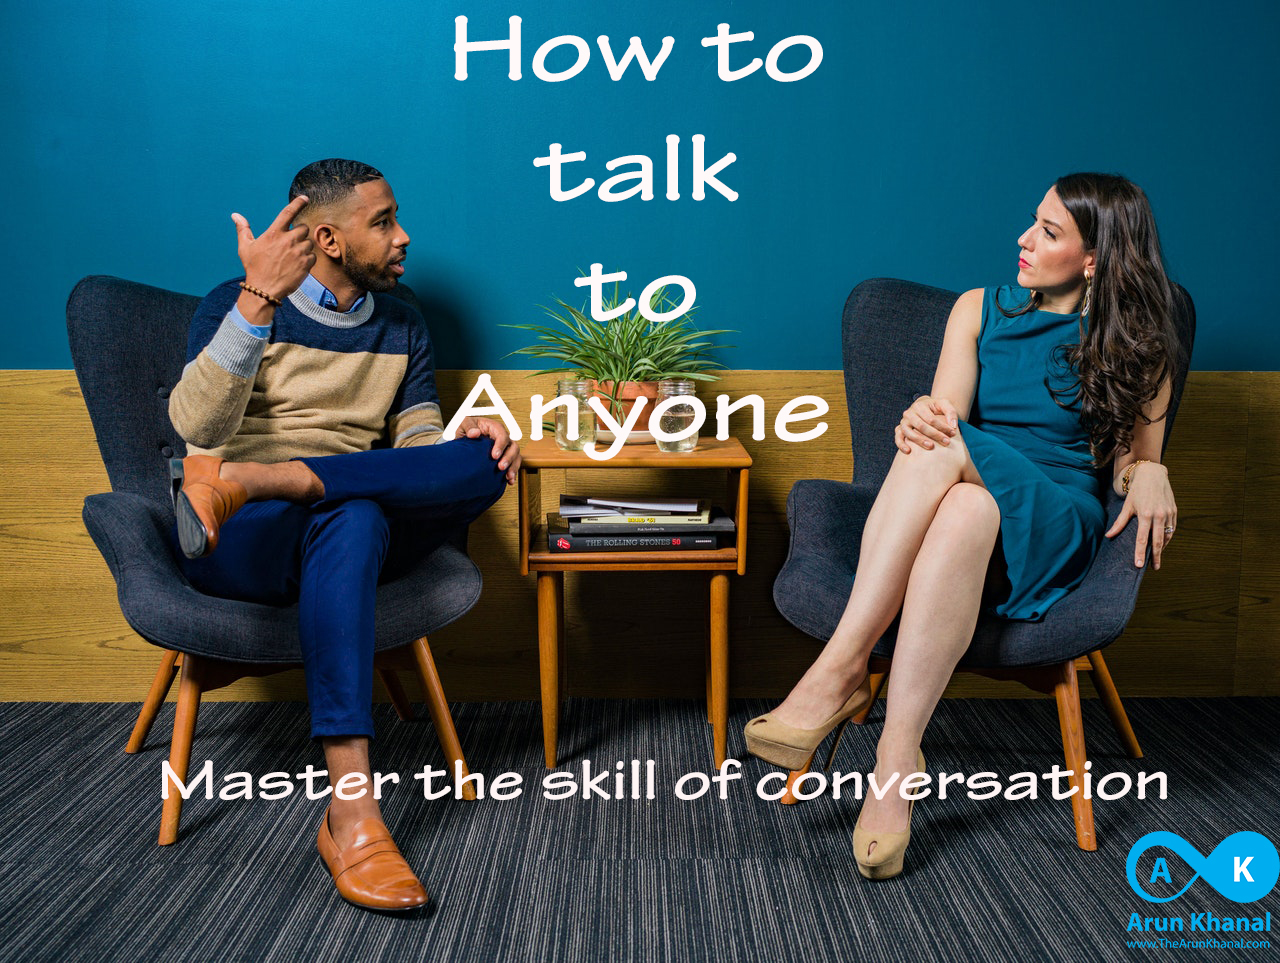 Master the skill of conversation and talk to anyone